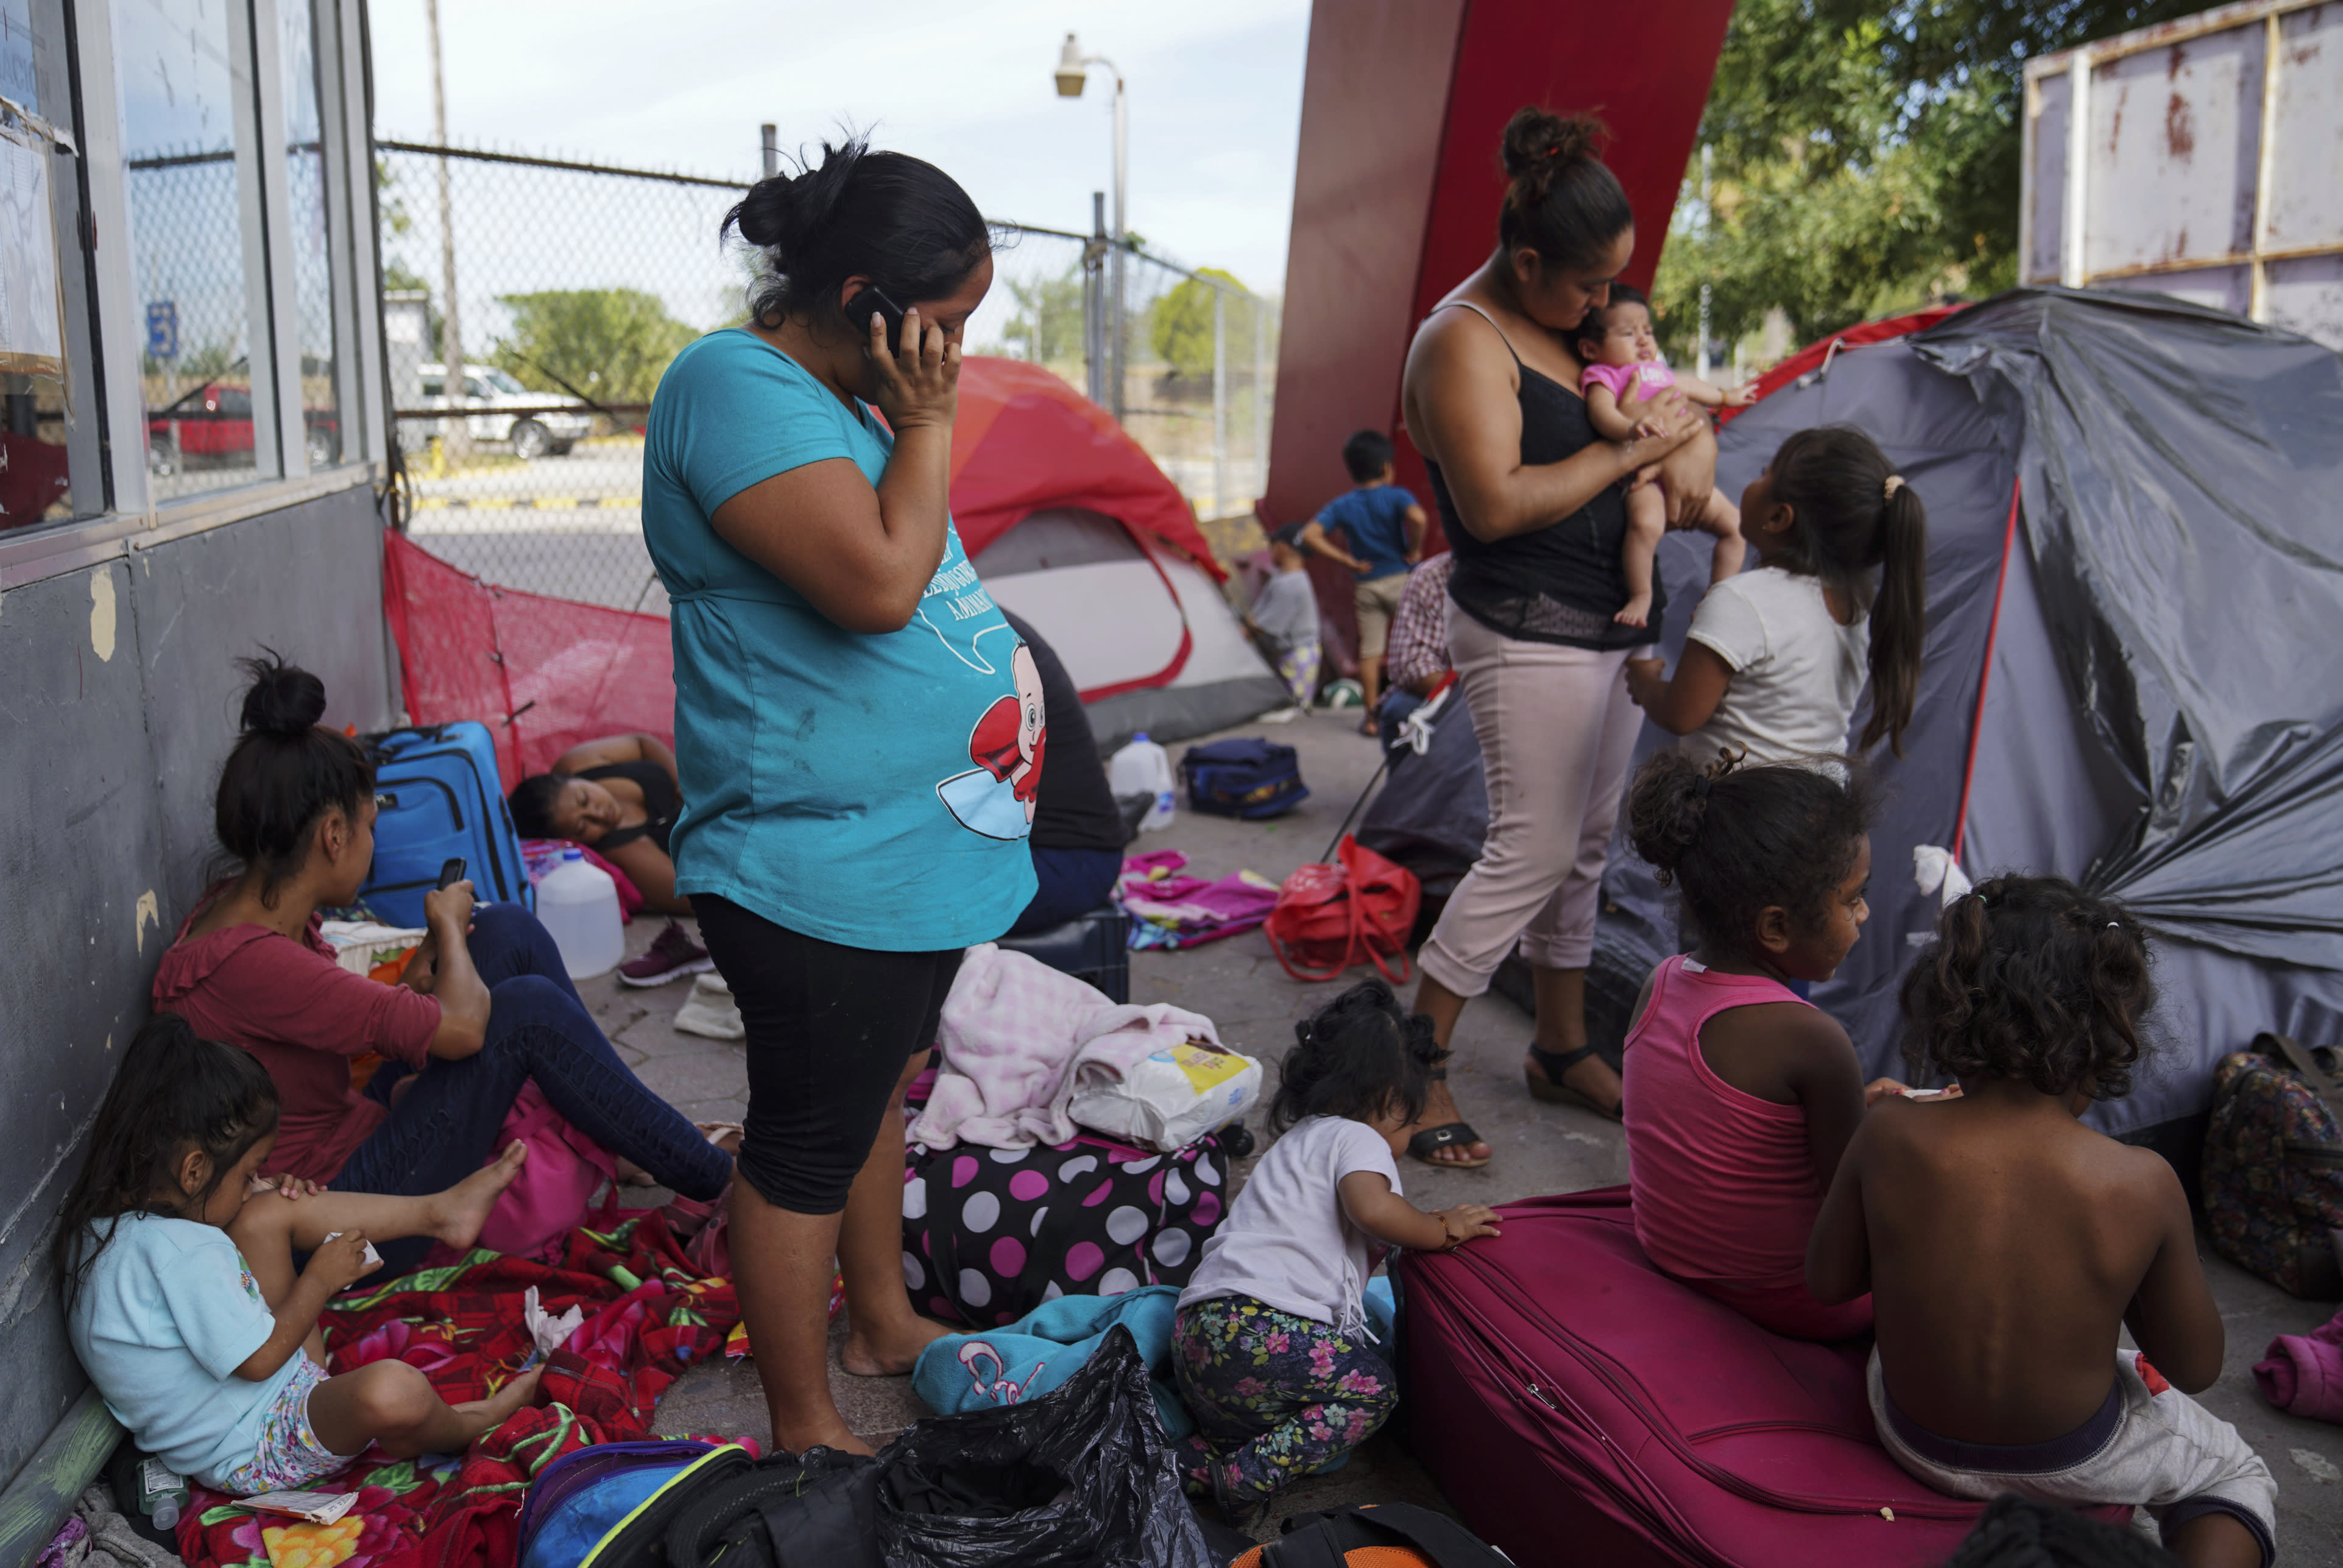 In this Aug. 30, 2019, photo, a group of Mexican asylum seekers wait near the Gateway International Bridge in Matamoros, Mexico. Pregnant women face special hazards in Mexico because places where migrants wait to enter the U.S. often don't have access to regular meals, clean water, and medical care. (AP Photo/Veronica G. Cardenas)